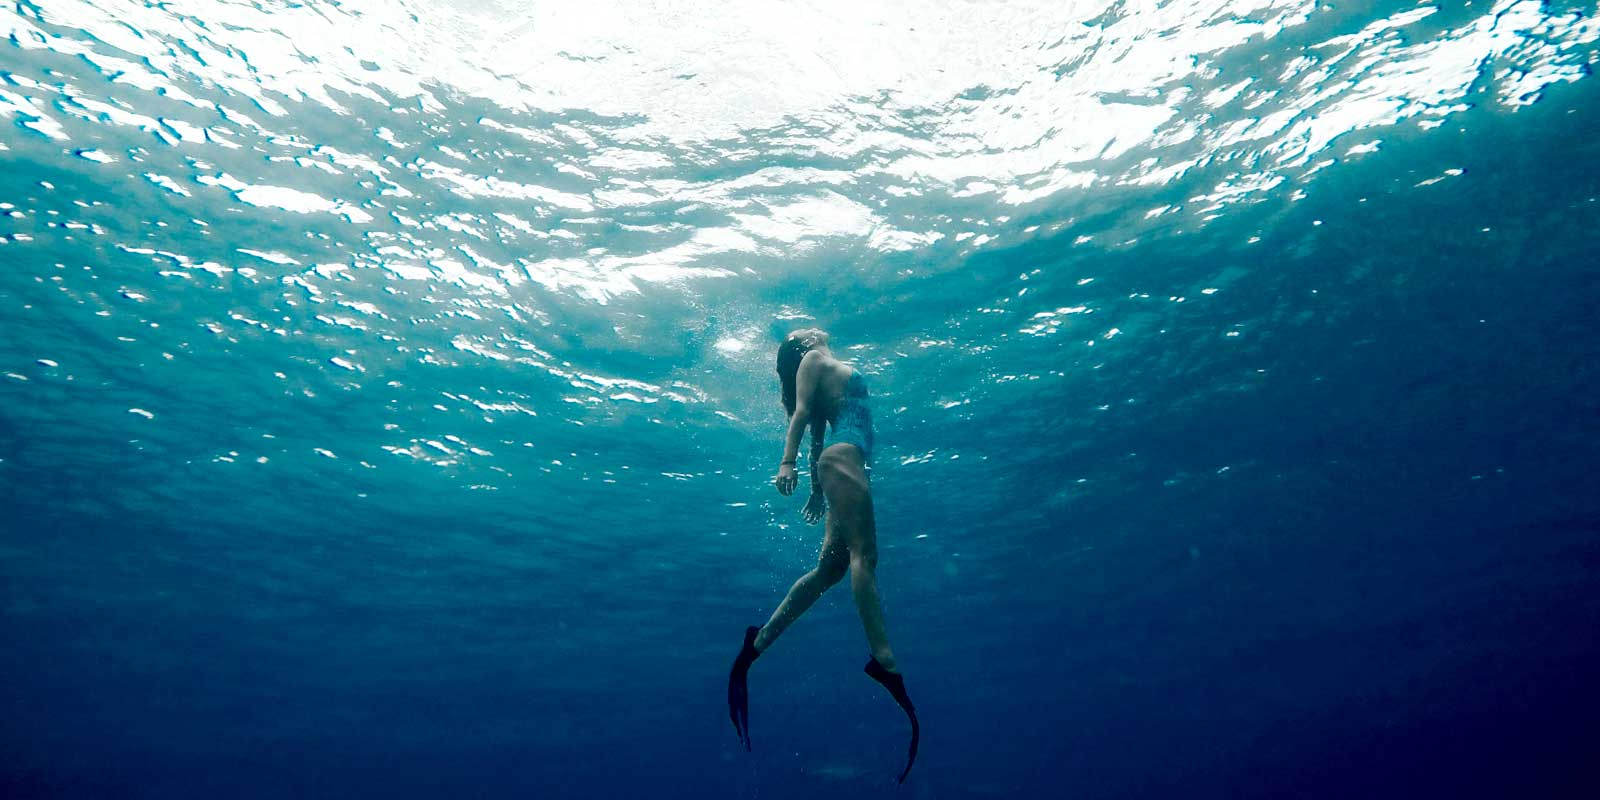 If you love being in the water, Hawaii is the perfect place for a vacation. Maybe you can try freediving?